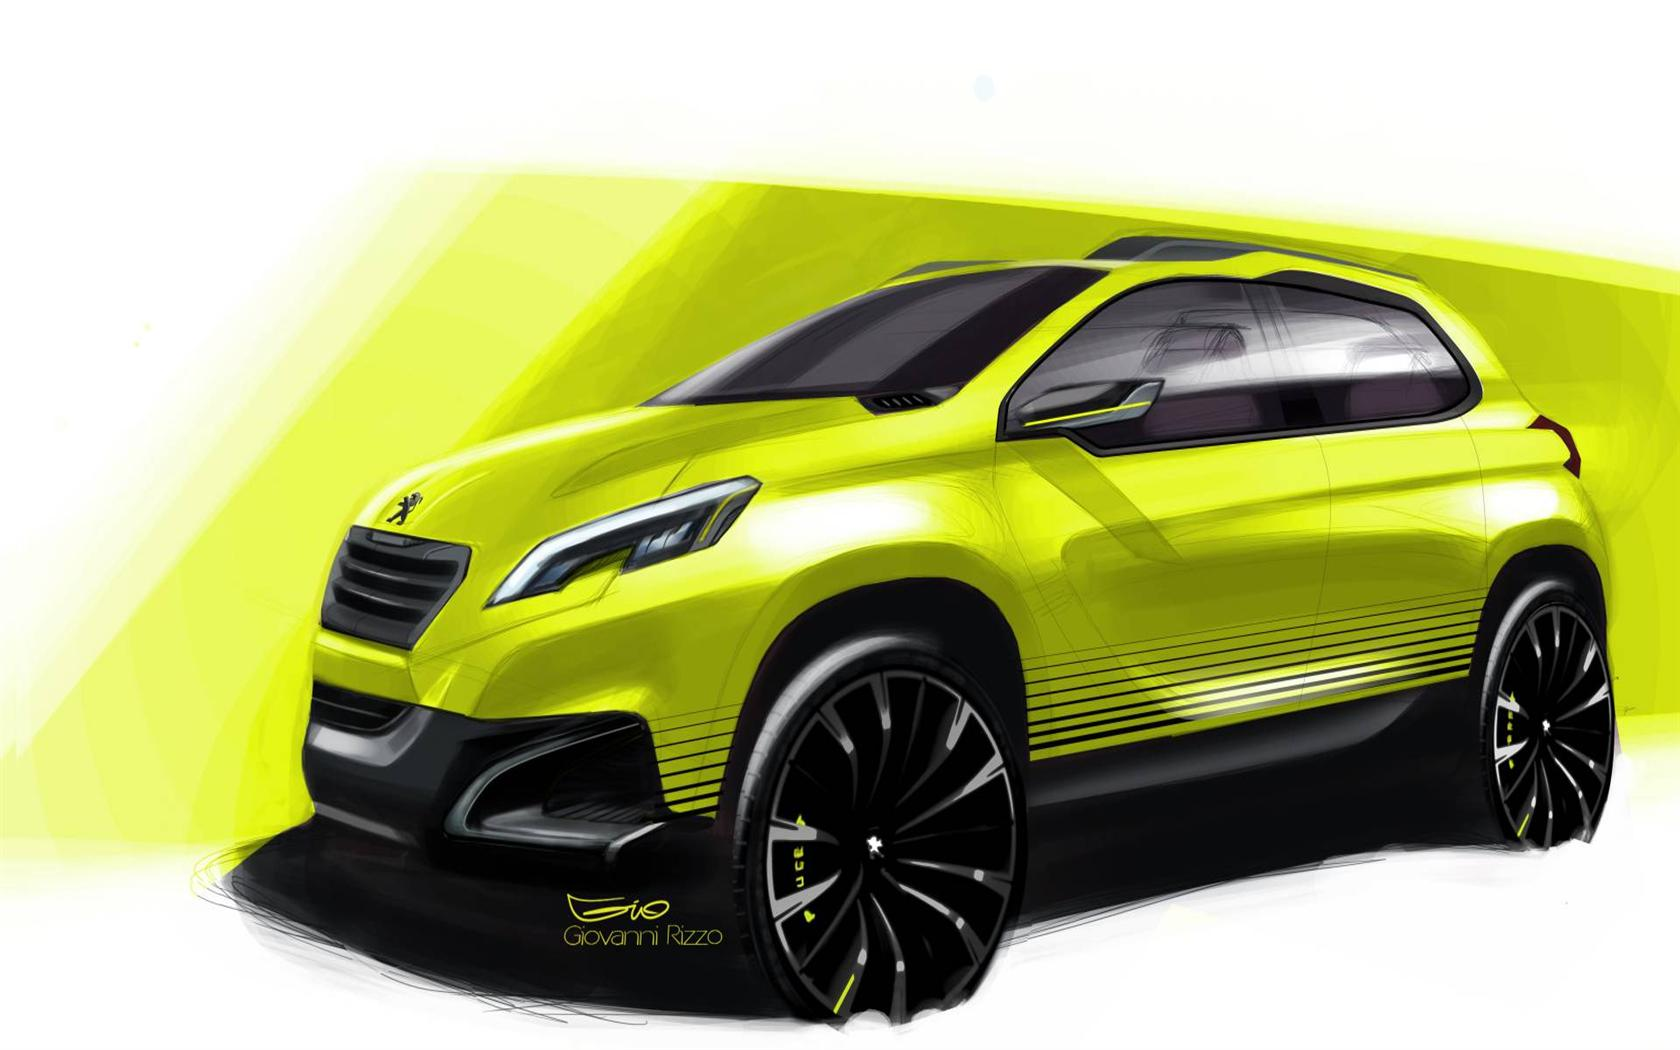 peugeot suv concept peugeot quartz concept could hint at new suv peugeot reveals quartz. Black Bedroom Furniture Sets. Home Design Ideas